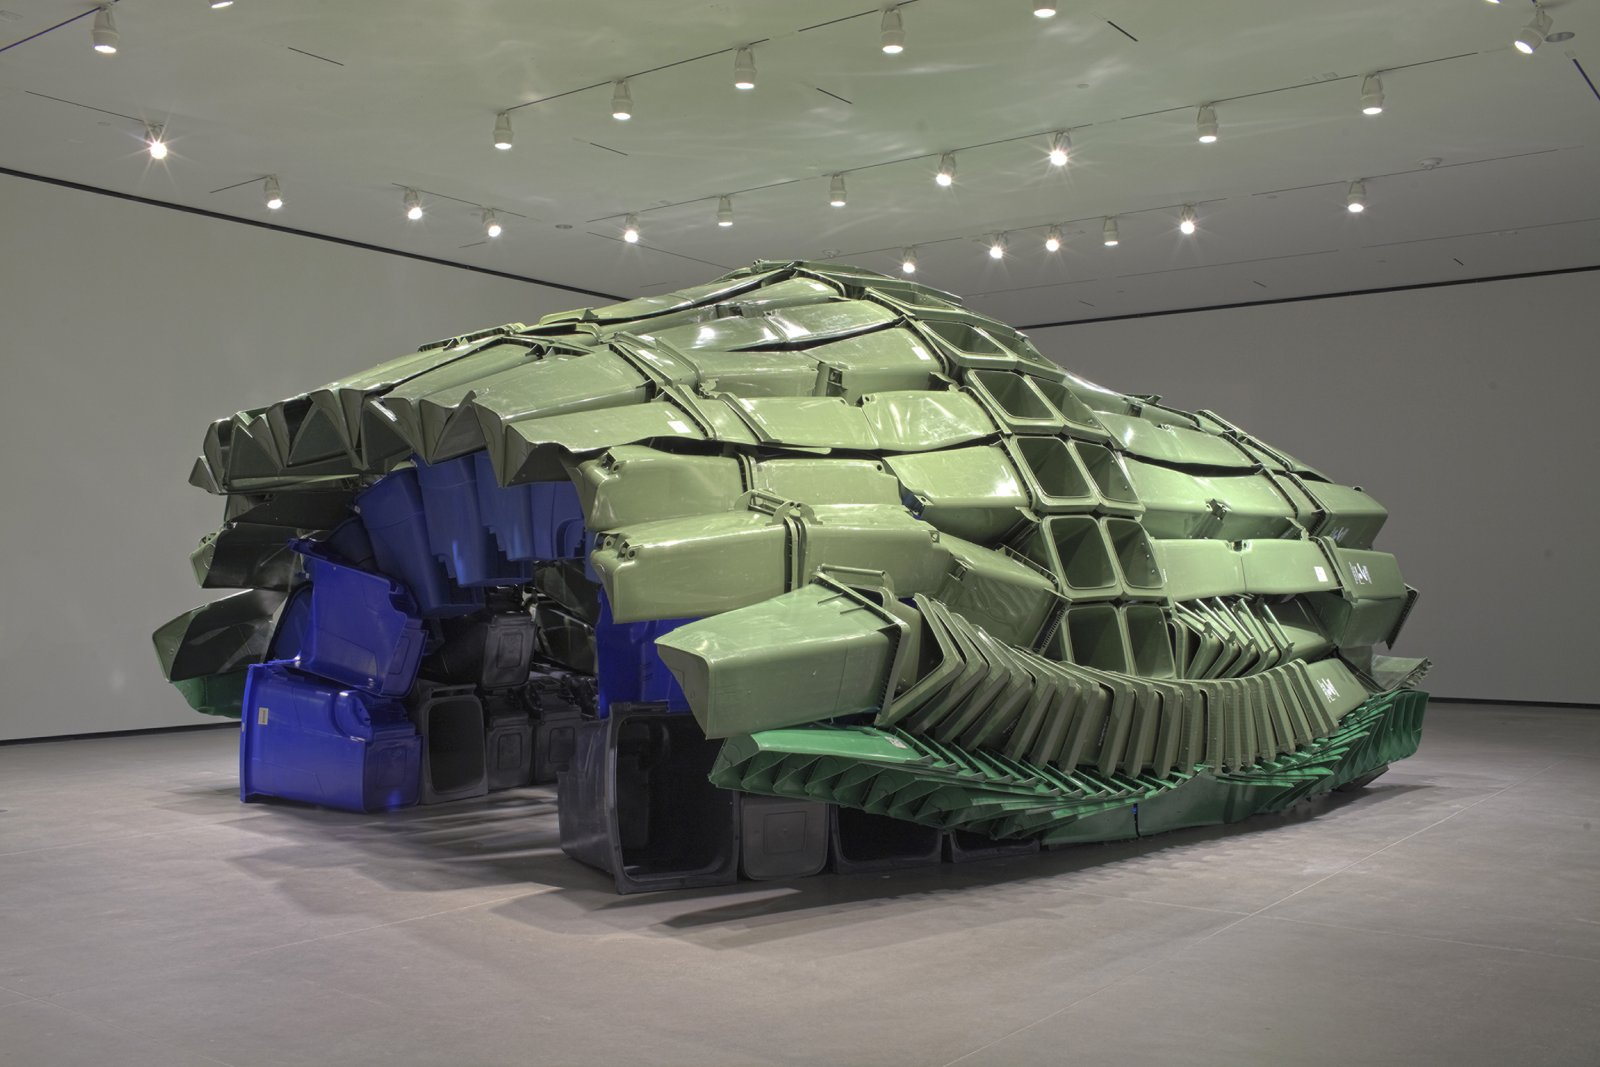 Brian Jungen,Carapace, 2009–2011, plastic recycling containers, 144 x 264 x 252 in. (370 x 670 x 640 cm). Installation view, Art Gallery of Alberta,Edmonton, AB, 2011